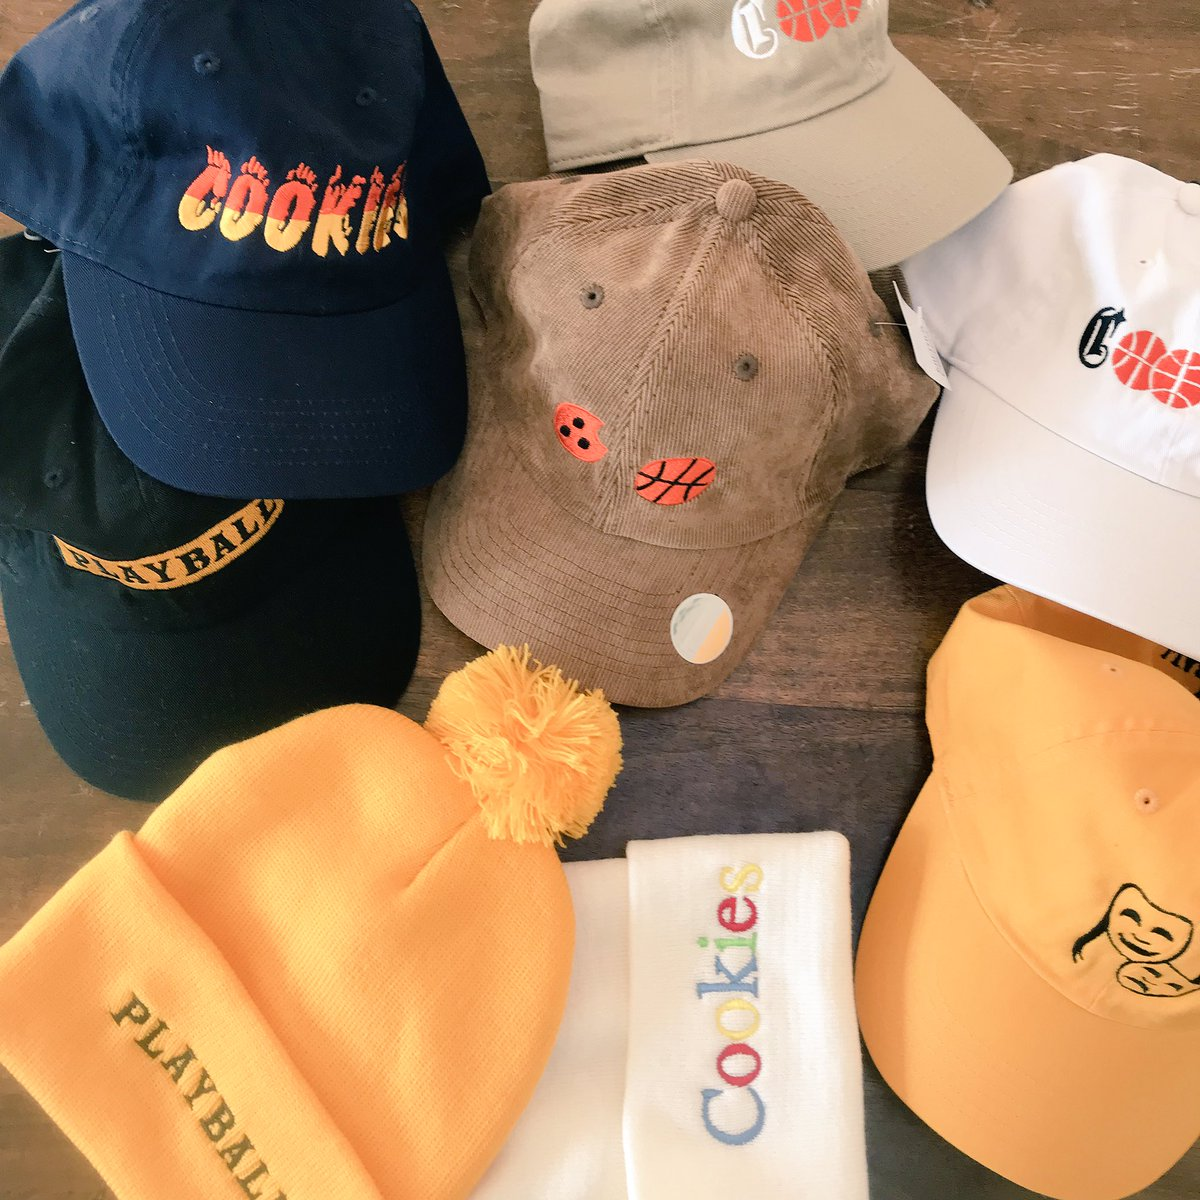 live look at the @CookiesHoops hat stash. All currently available on cookieshoop.com